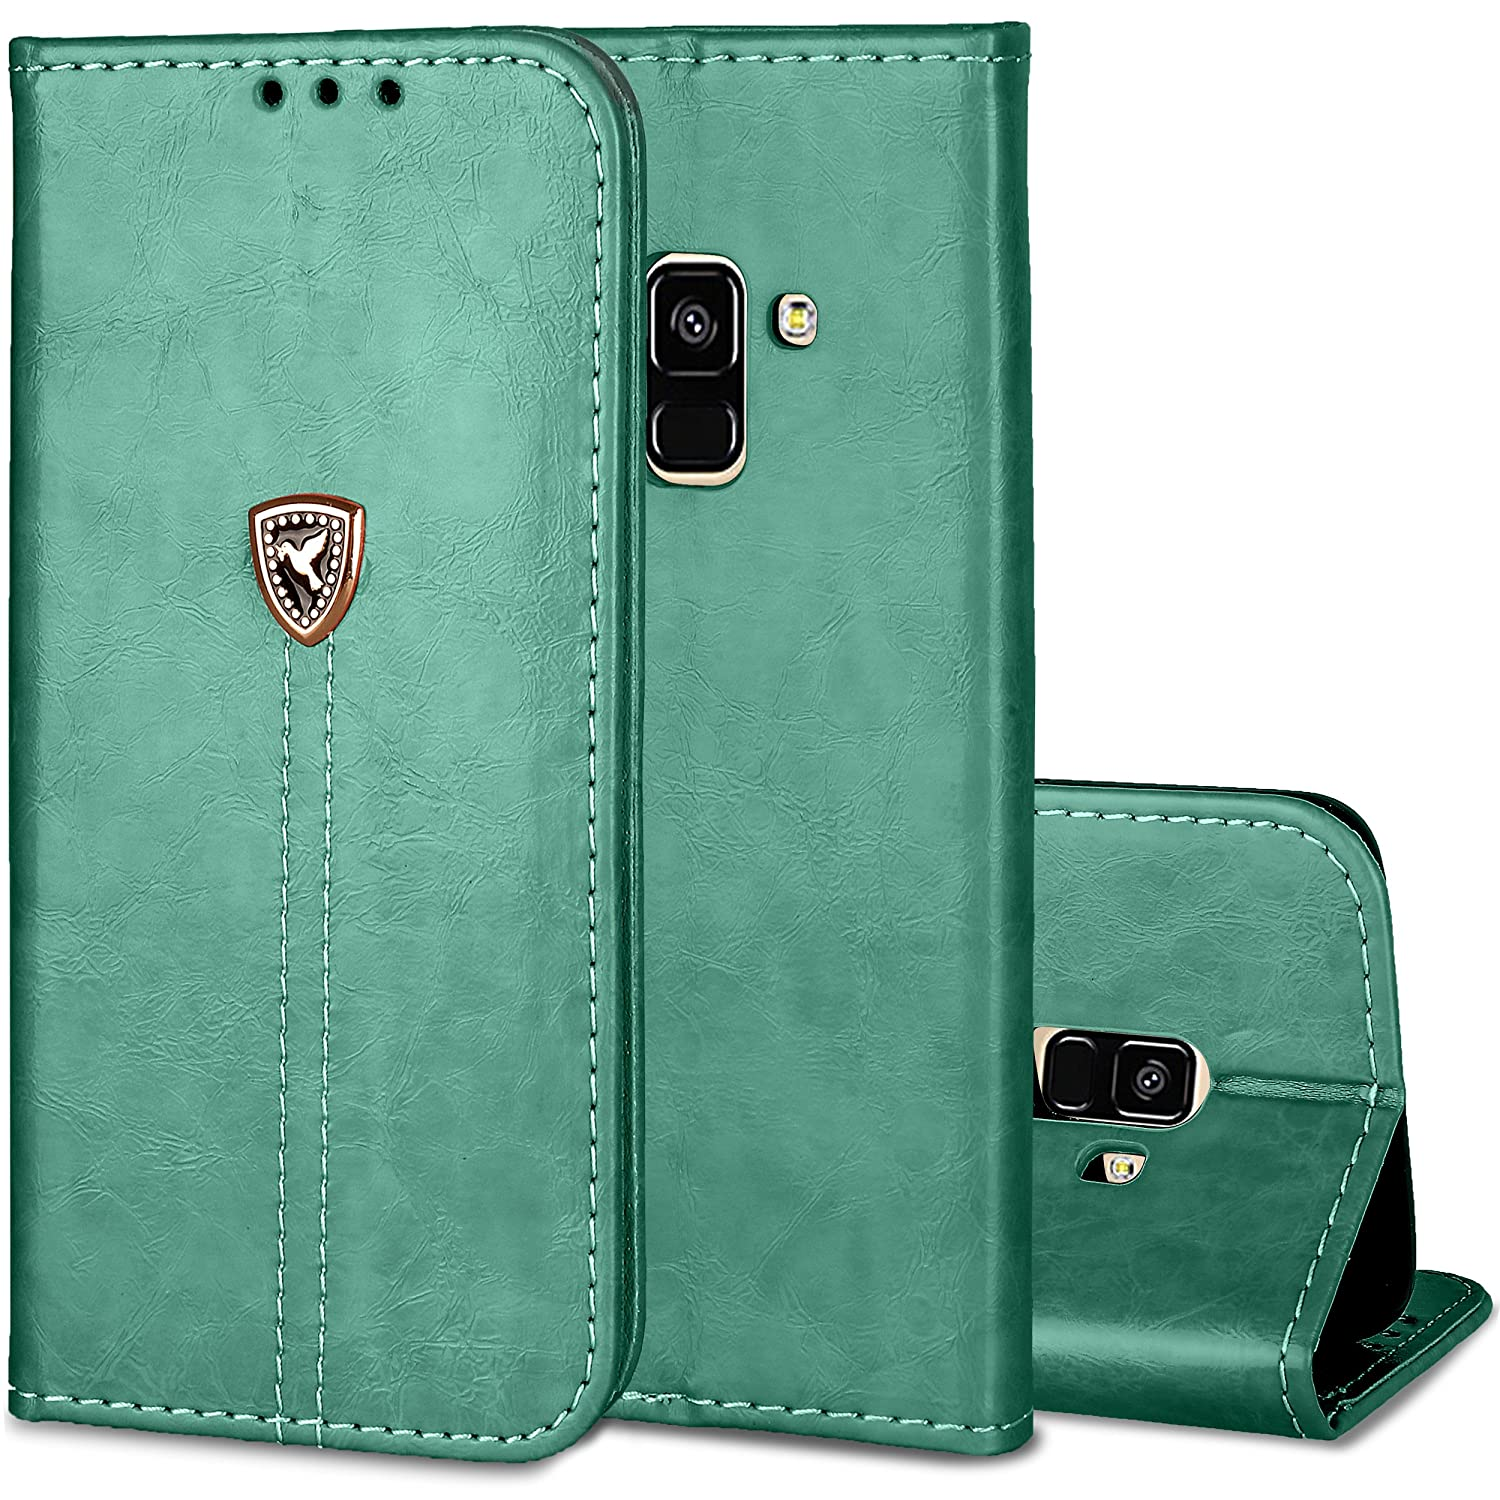 Galaxy S8 Case Ultra Pu Leather Gel Wallet Cover Built Goospery Samsung J2 Canvas Diary Green Credit Card Holder Book Style Front Back Housing Fit Galaxys8 Sm G9500 G950fd